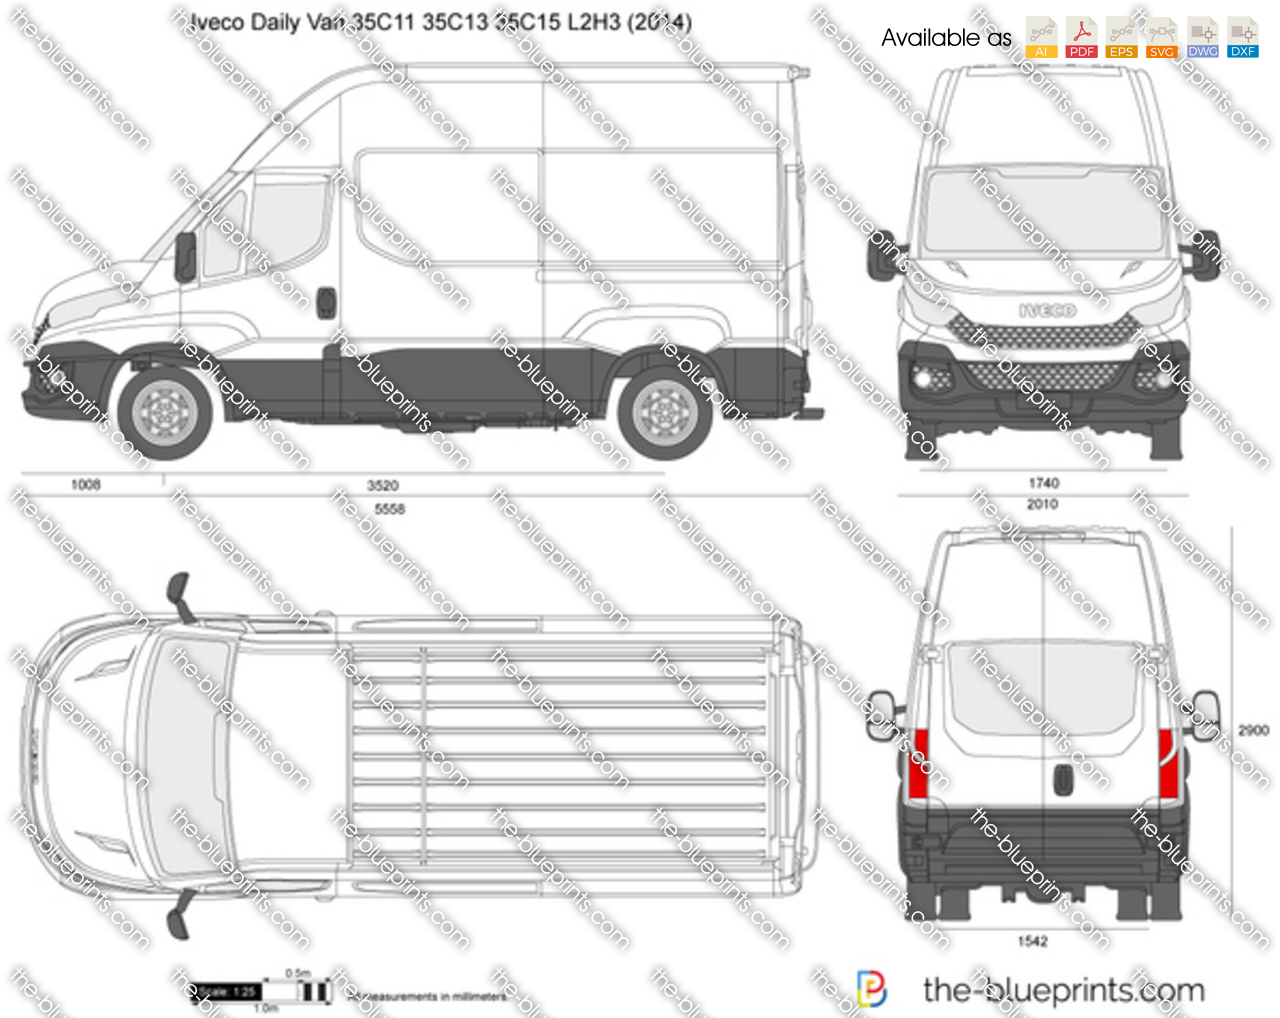 Iveco Daily Van 35C11 35C13 35C15 L2H3 vector drawing